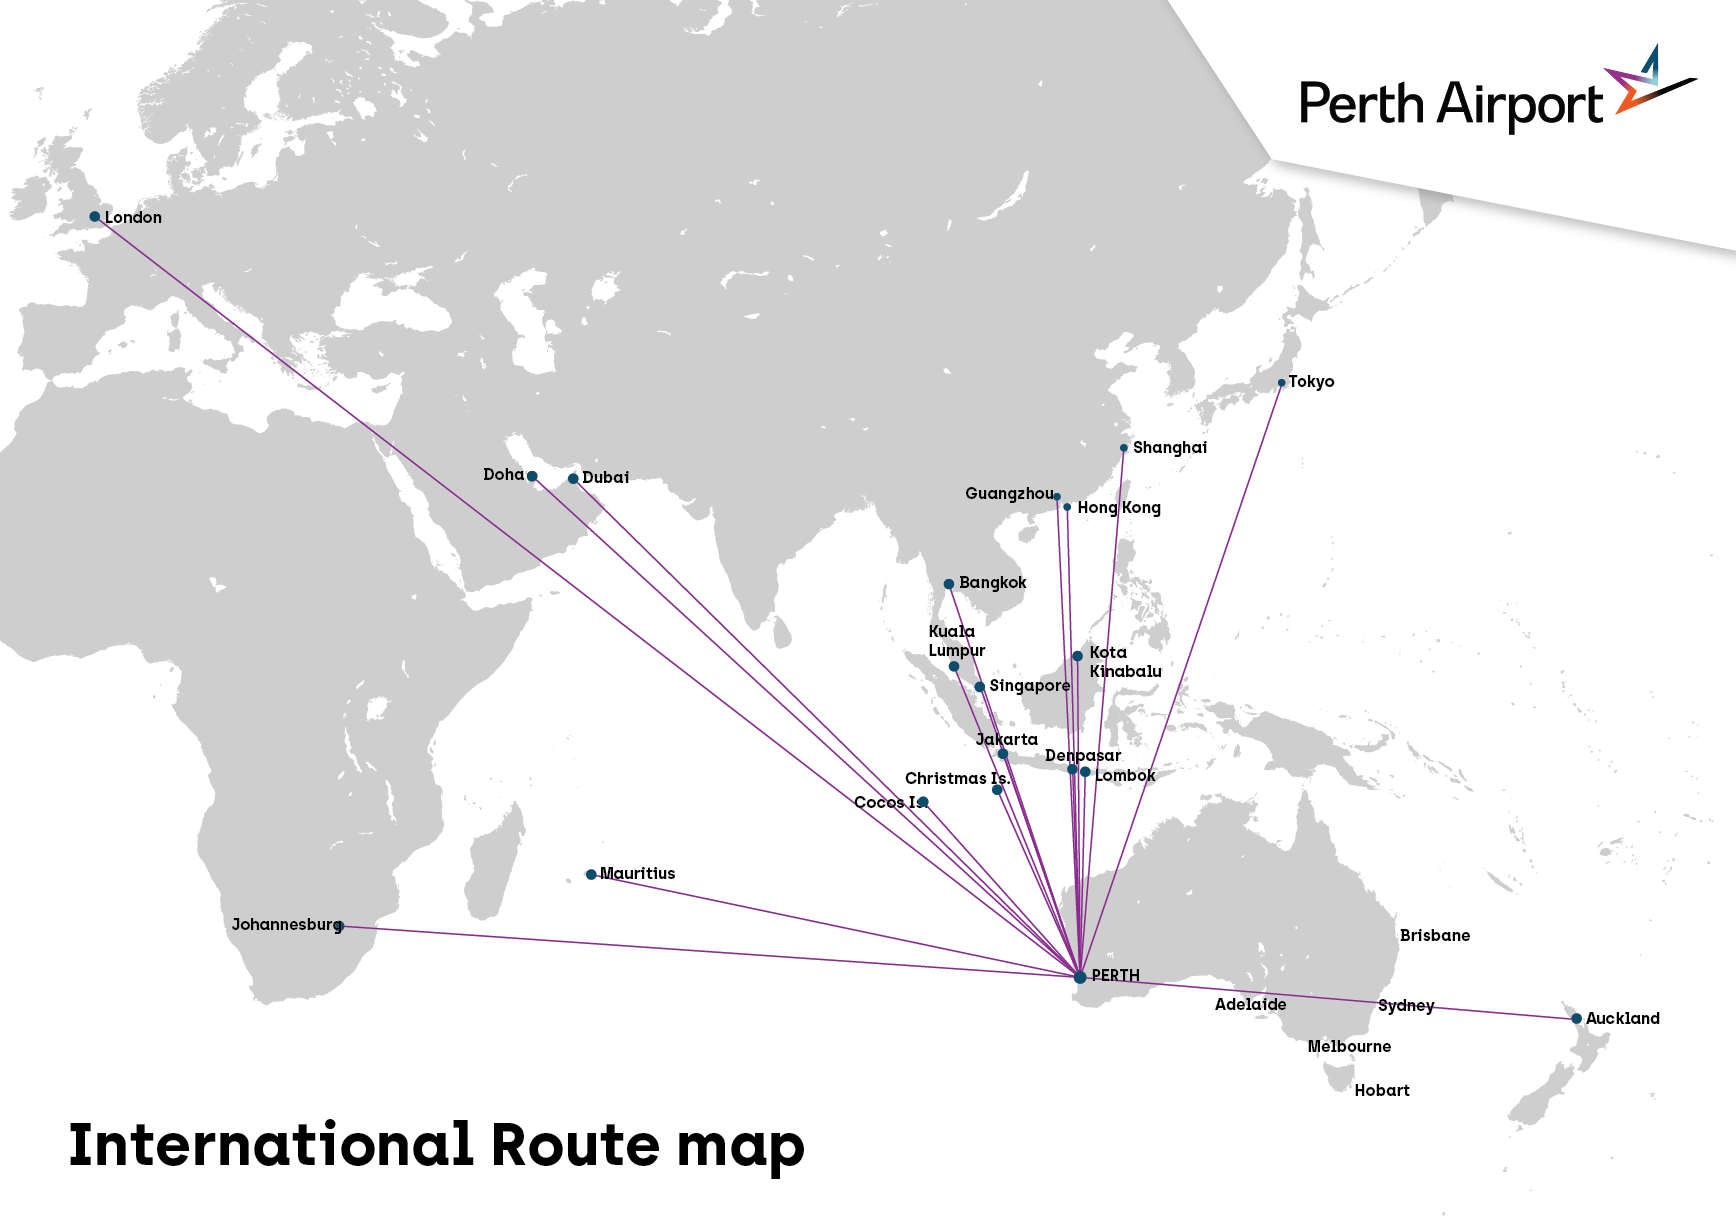 International routes available from Perth Airport